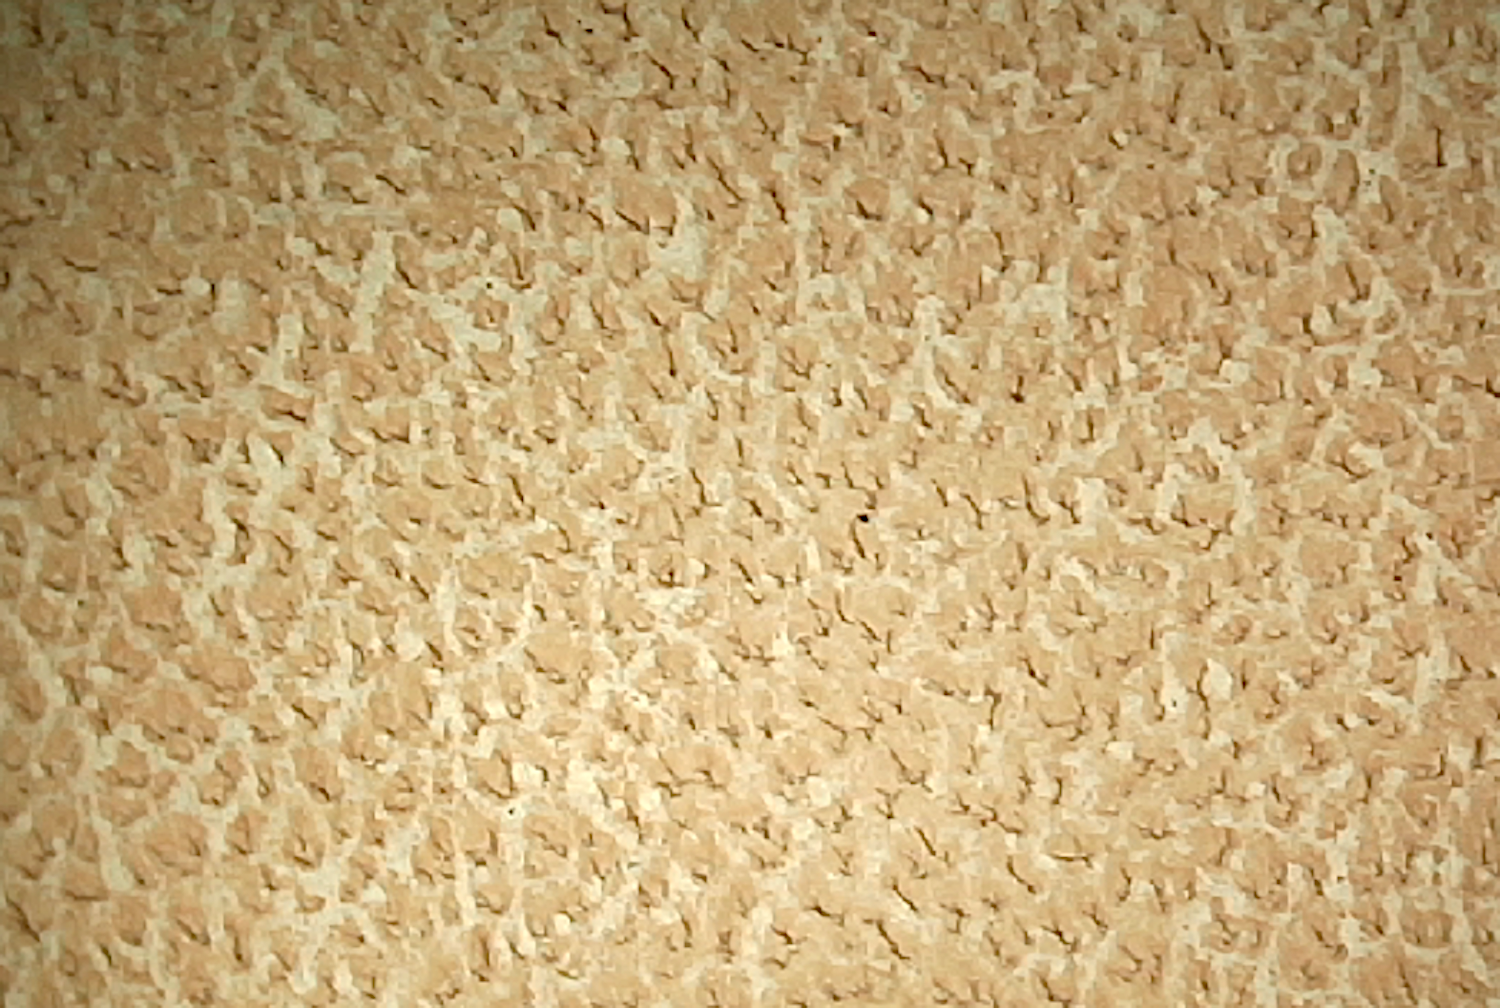 Vegetable tanned cow hide showing grain.